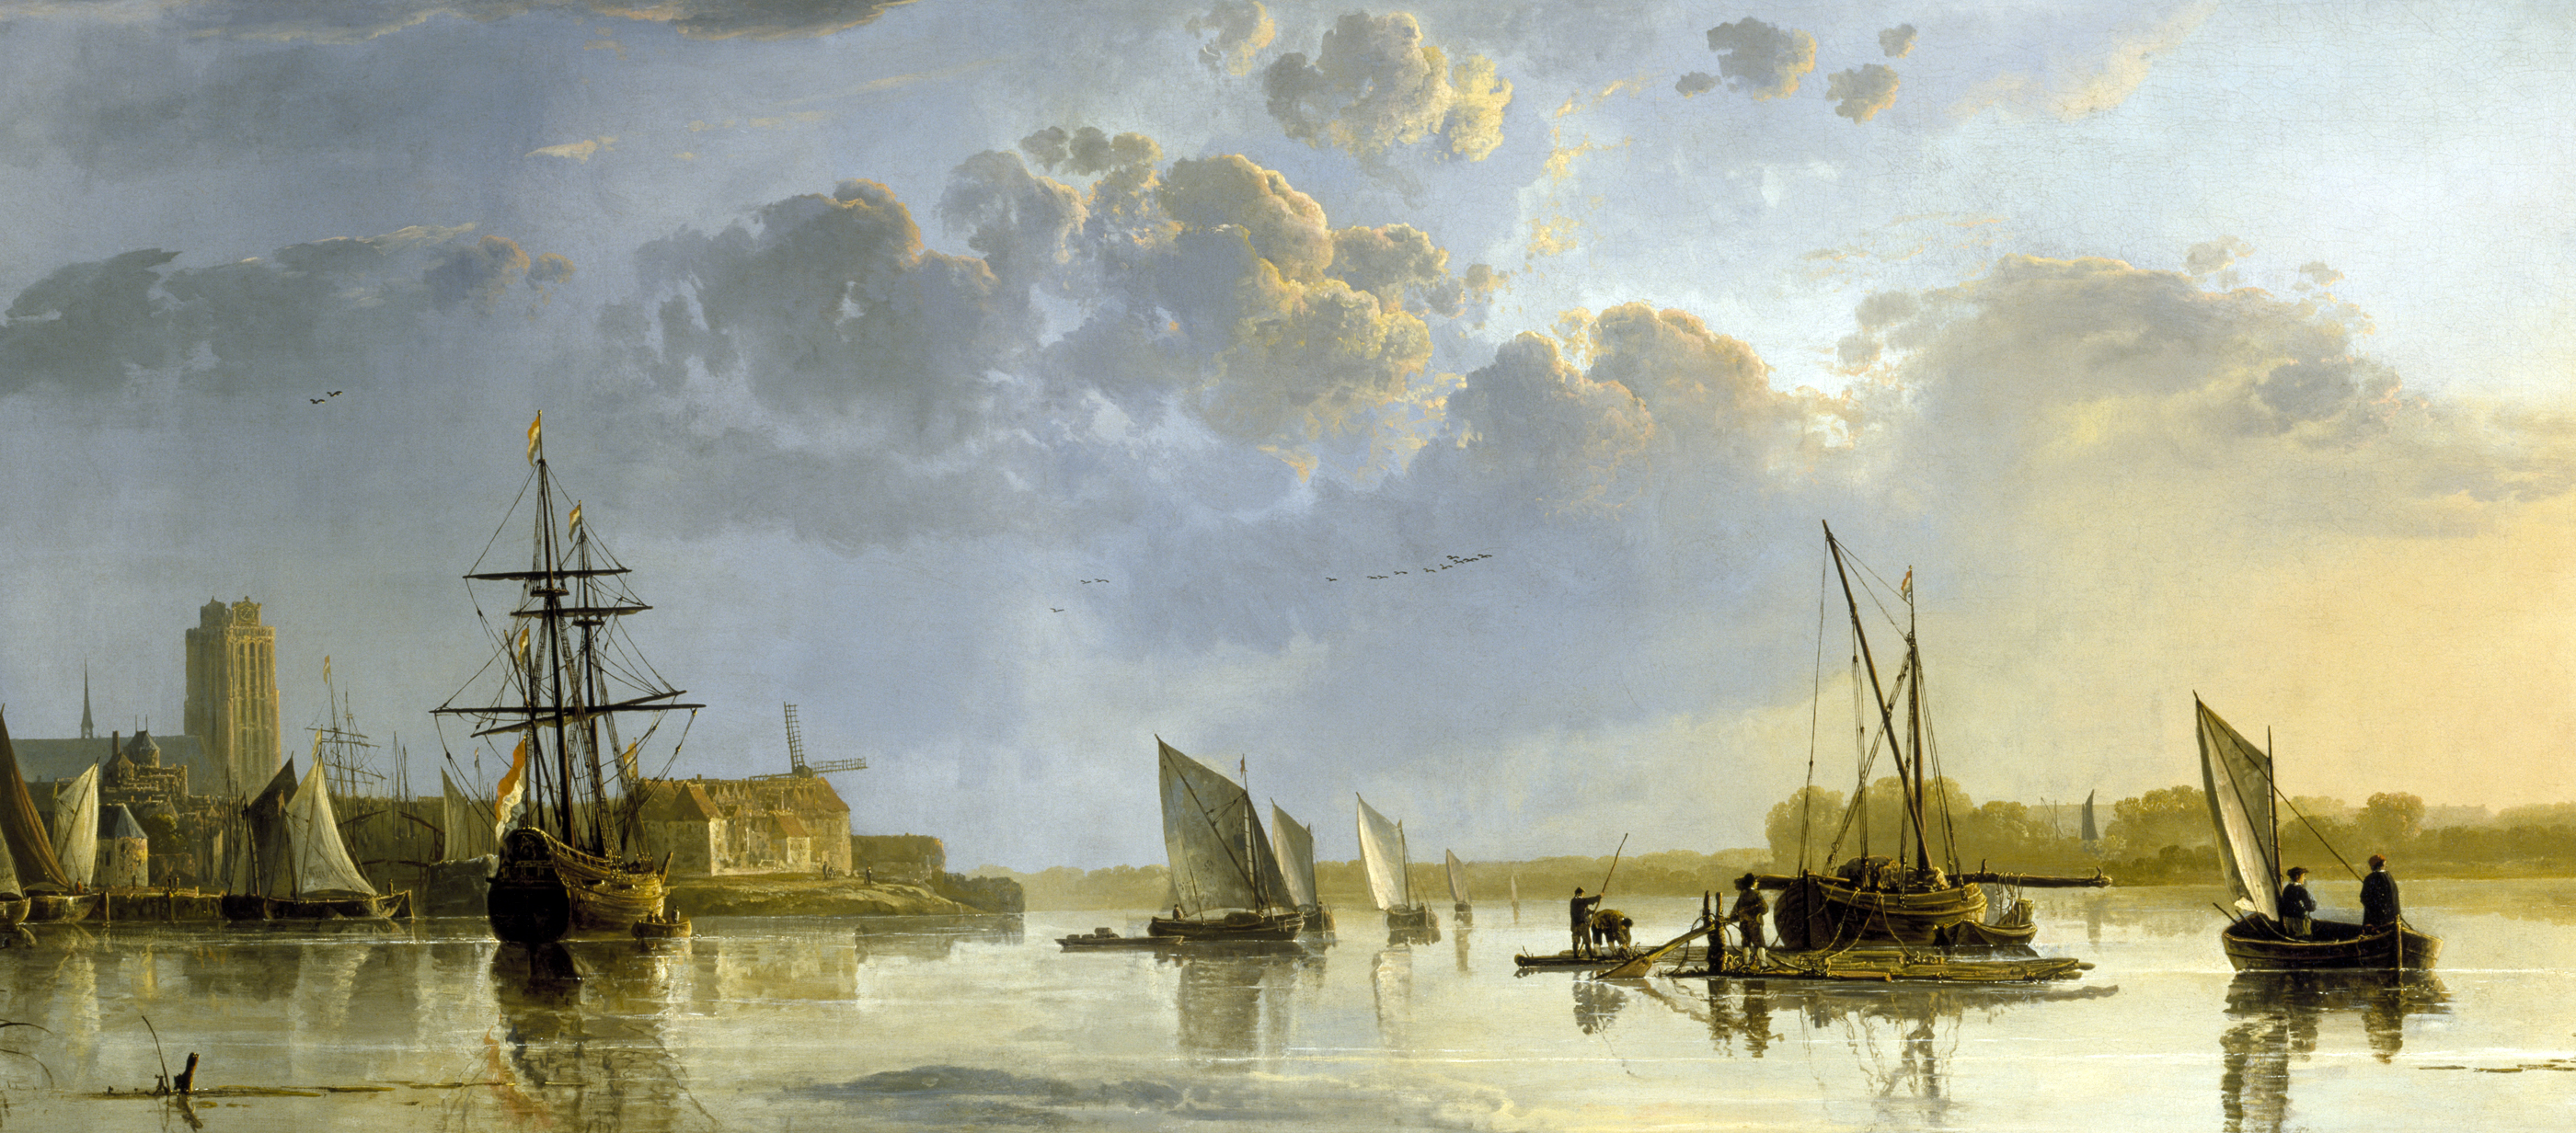 A View of Dordrecht, by Aelbert Cuyp, c. 1650.